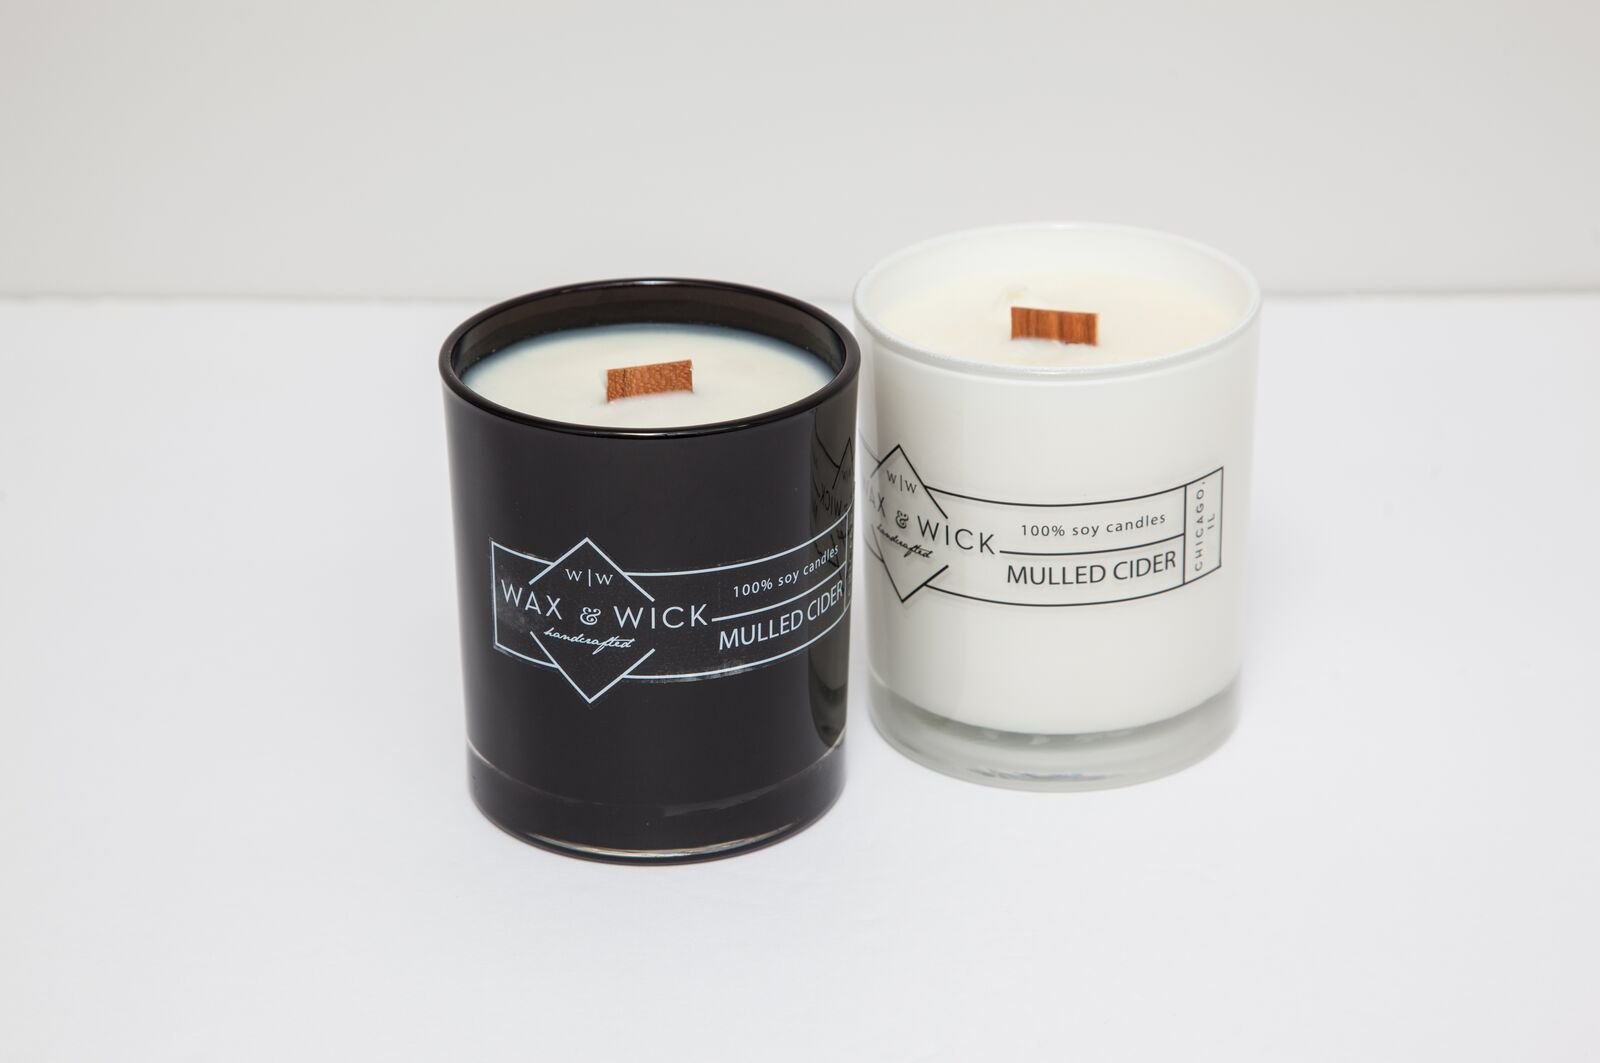 Scented Soy Candle: 100% Pure Soy Wax with Wood Double Wick | Burns Cleanly up to 60 Hrs | Mulled Cider Scent - Notes of Apple, Nutmeg, Vanilla, Caramel. | 12 oz Black Jar by Wax and Wick by Wax & Wick (Image #3)